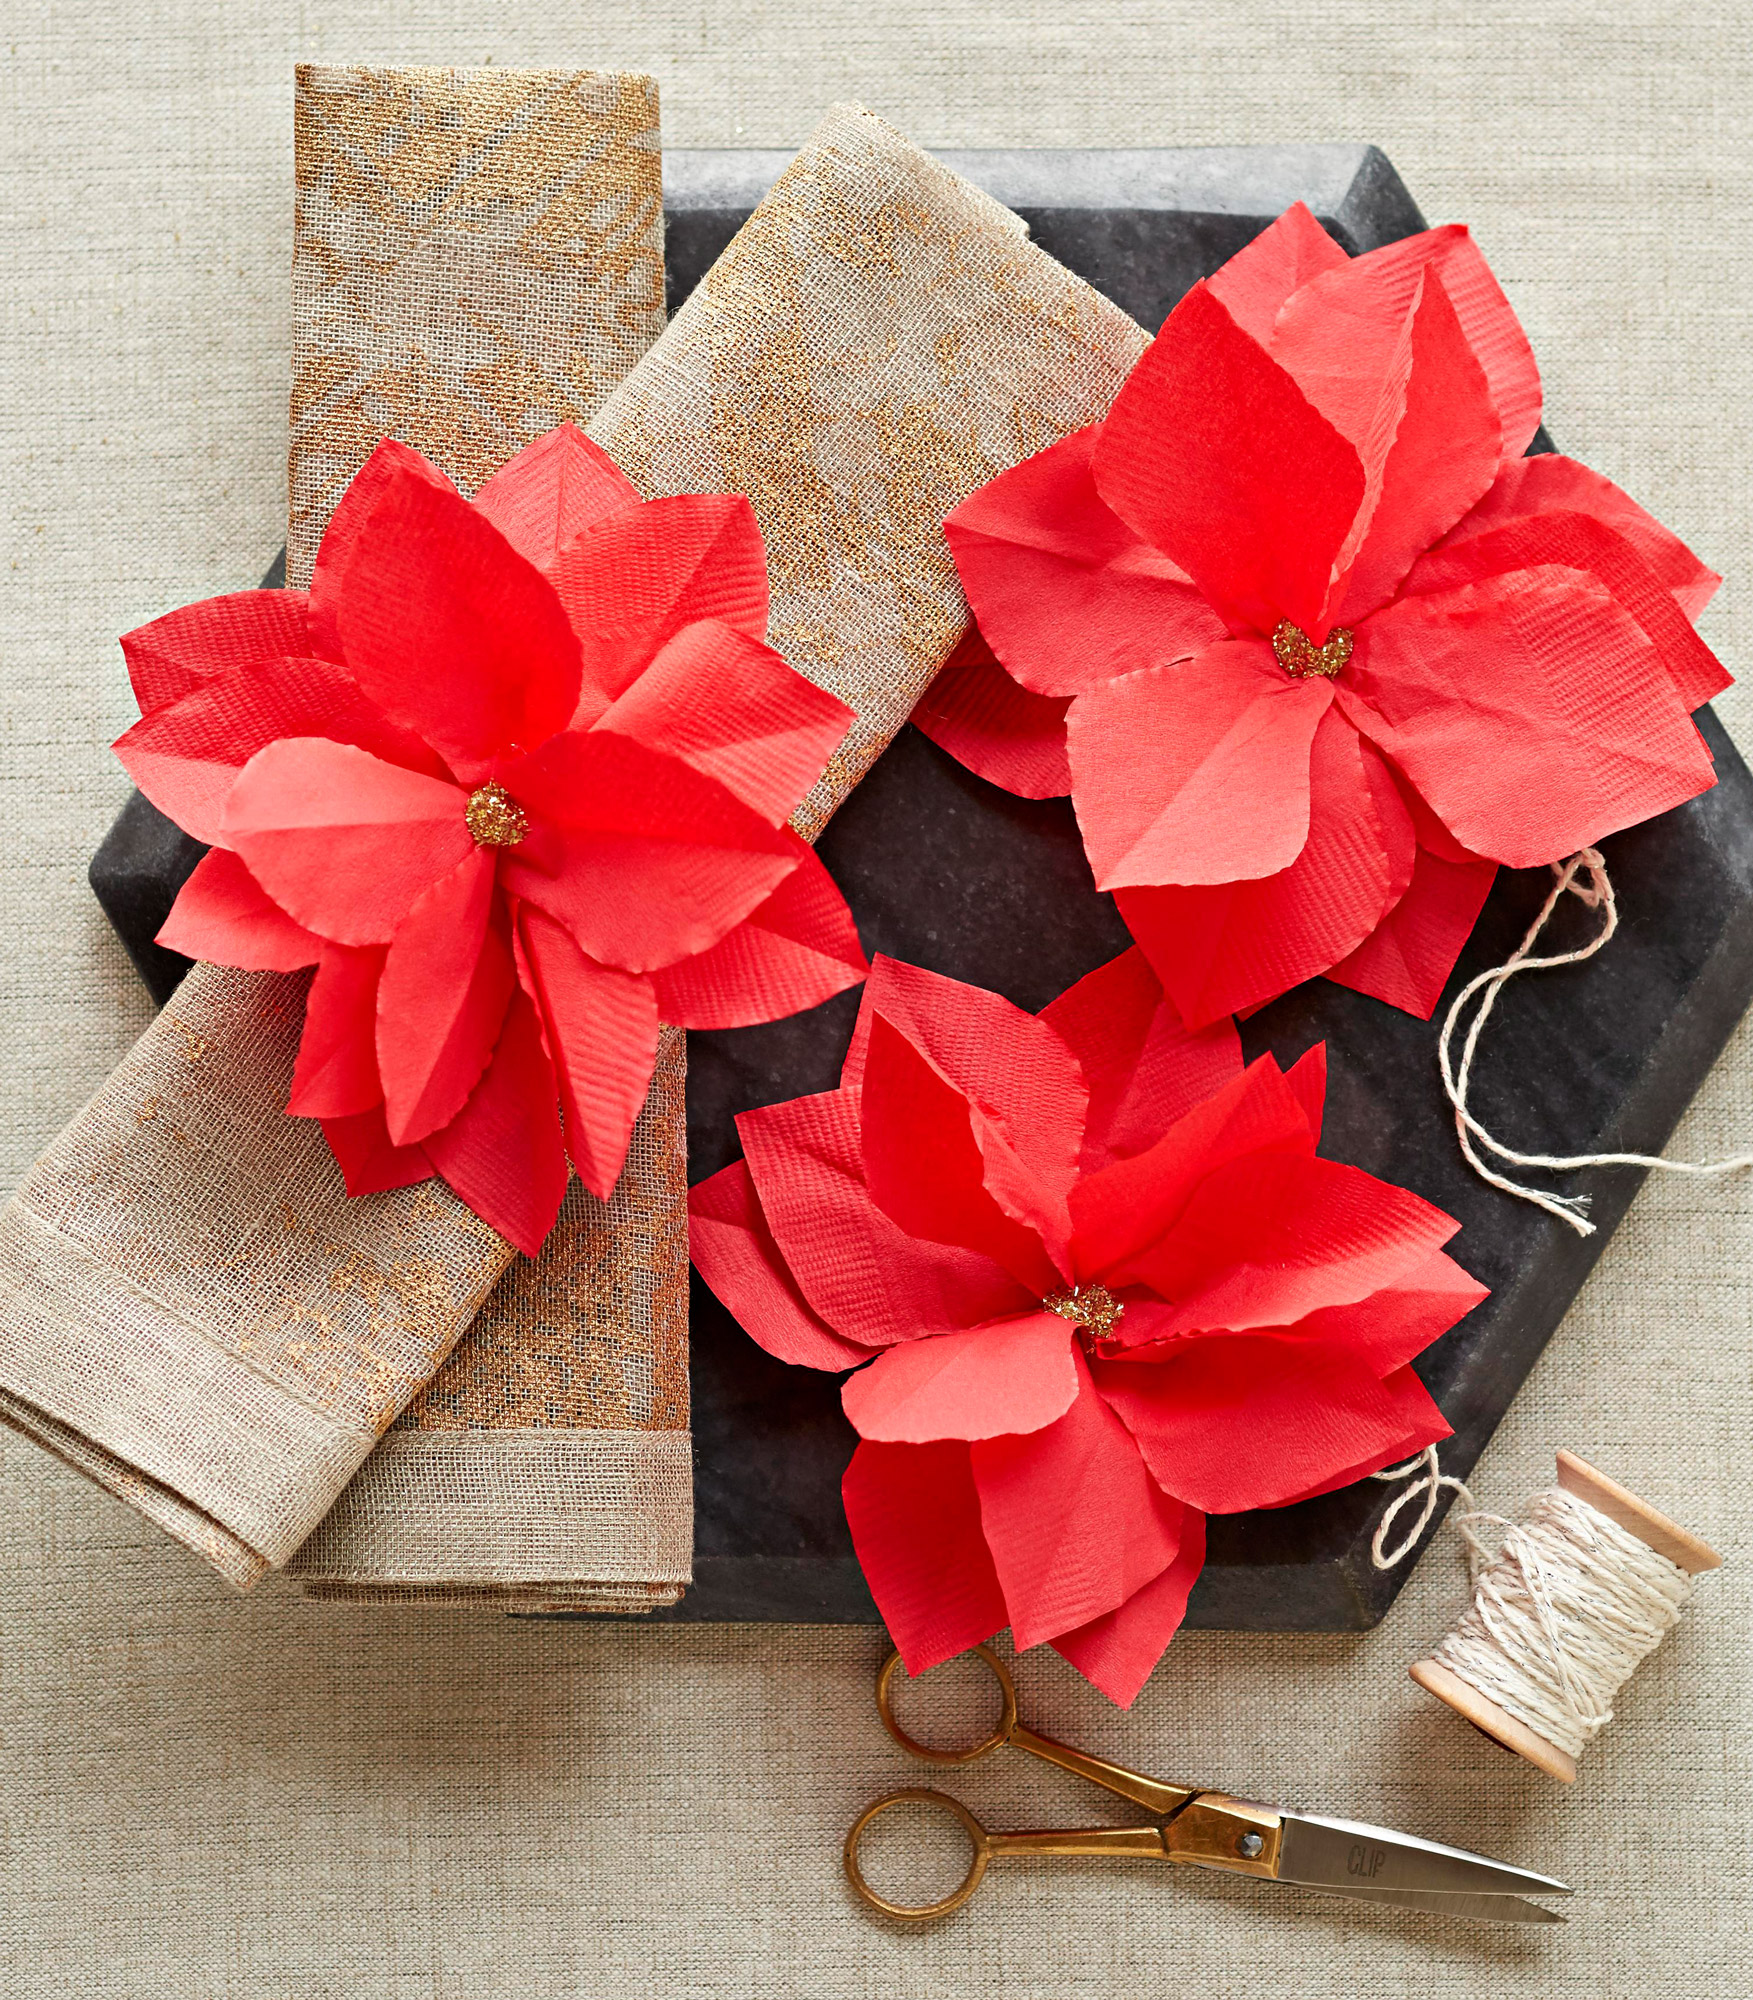 40 Easy Christmas Crafts